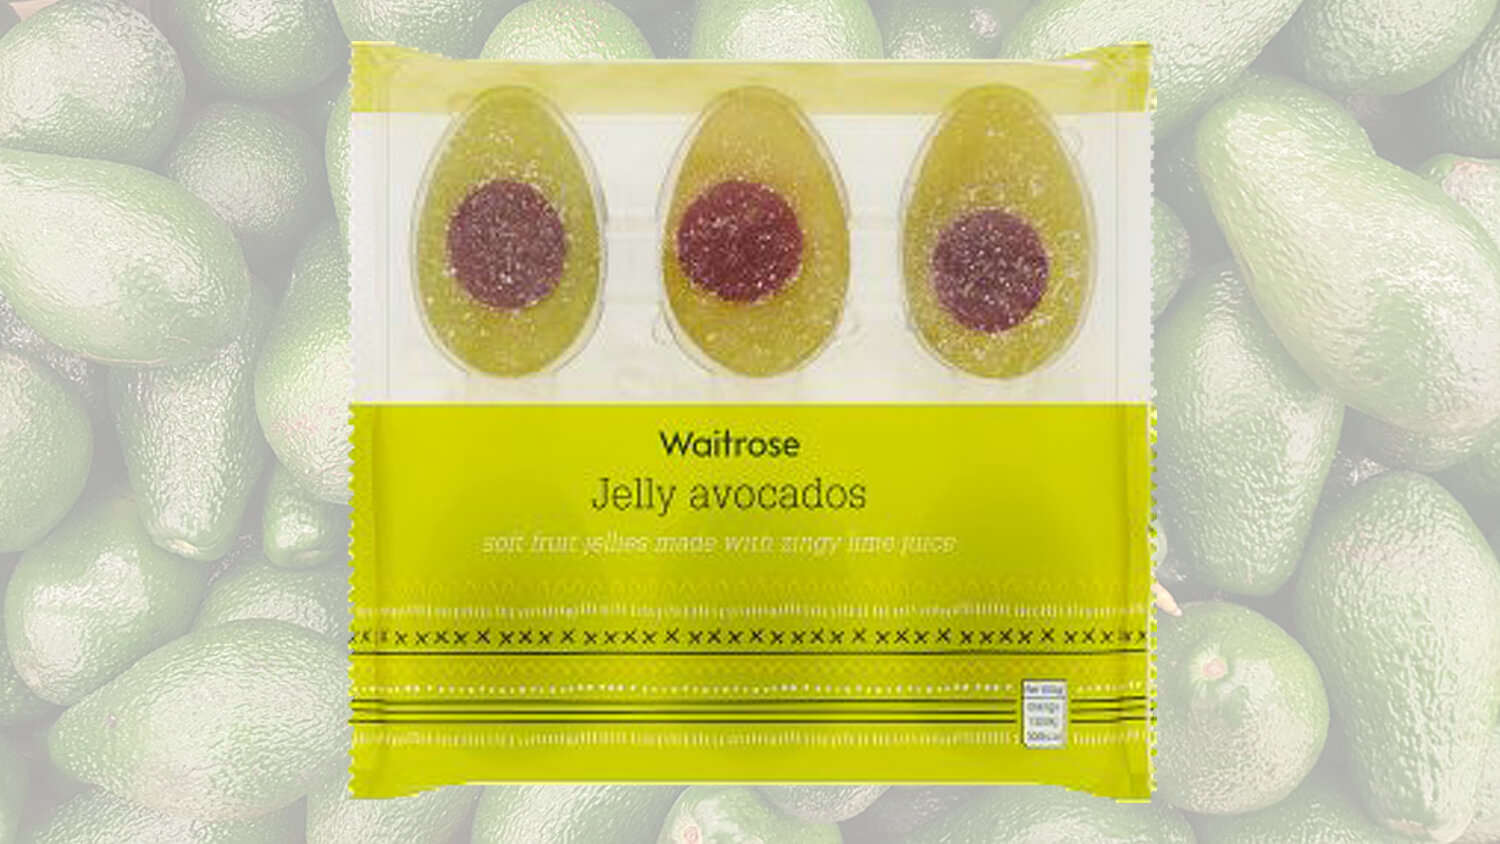 Vegan Avocado Jelly Sweets Have Arrived and They're Cute AF